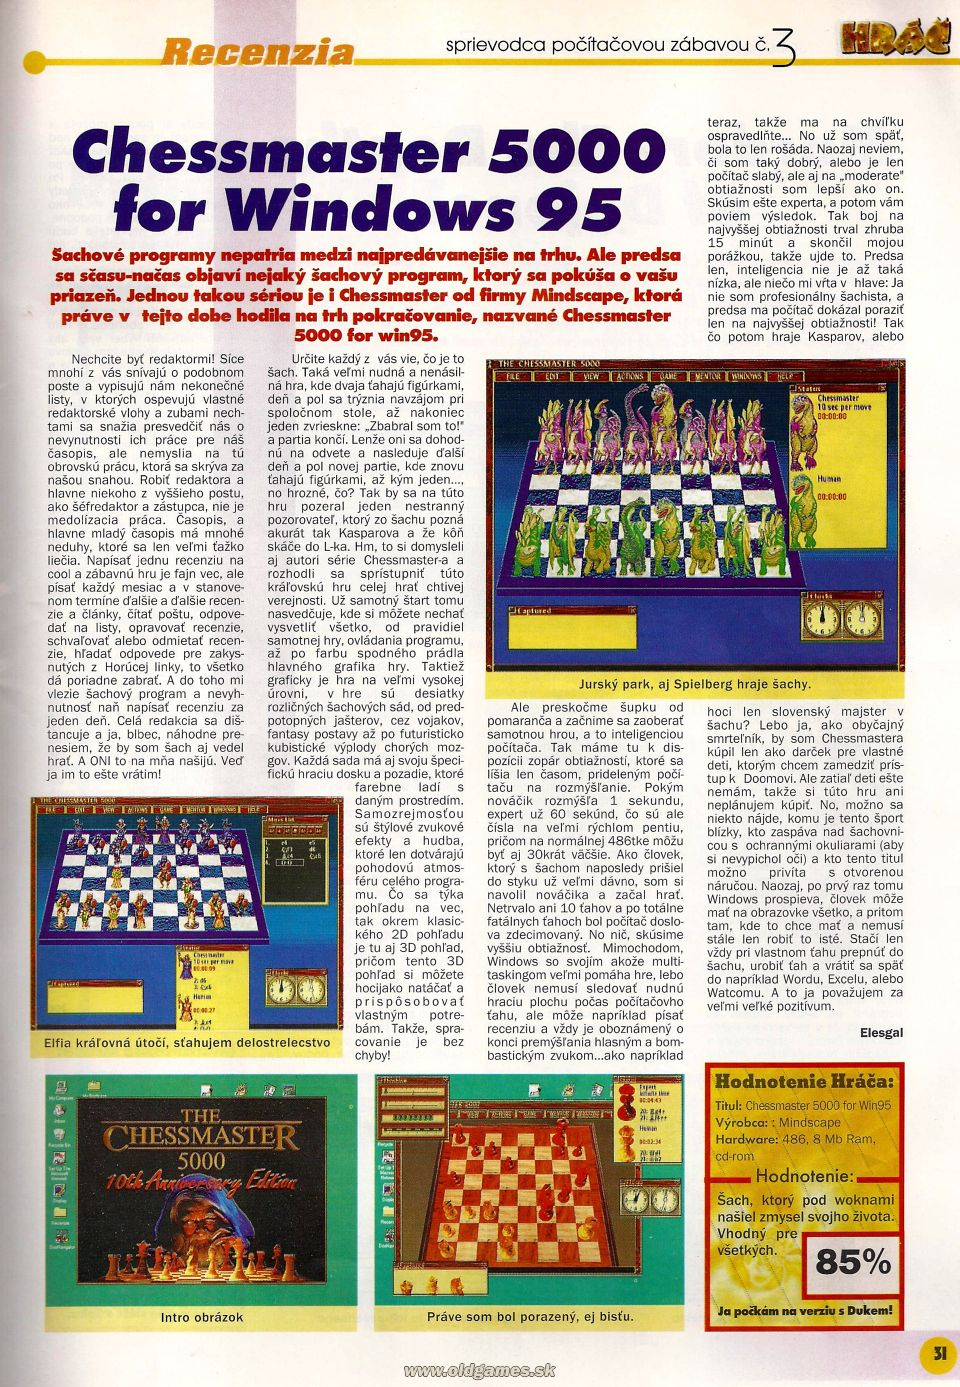 Chessmaster 5000 for Windows 95